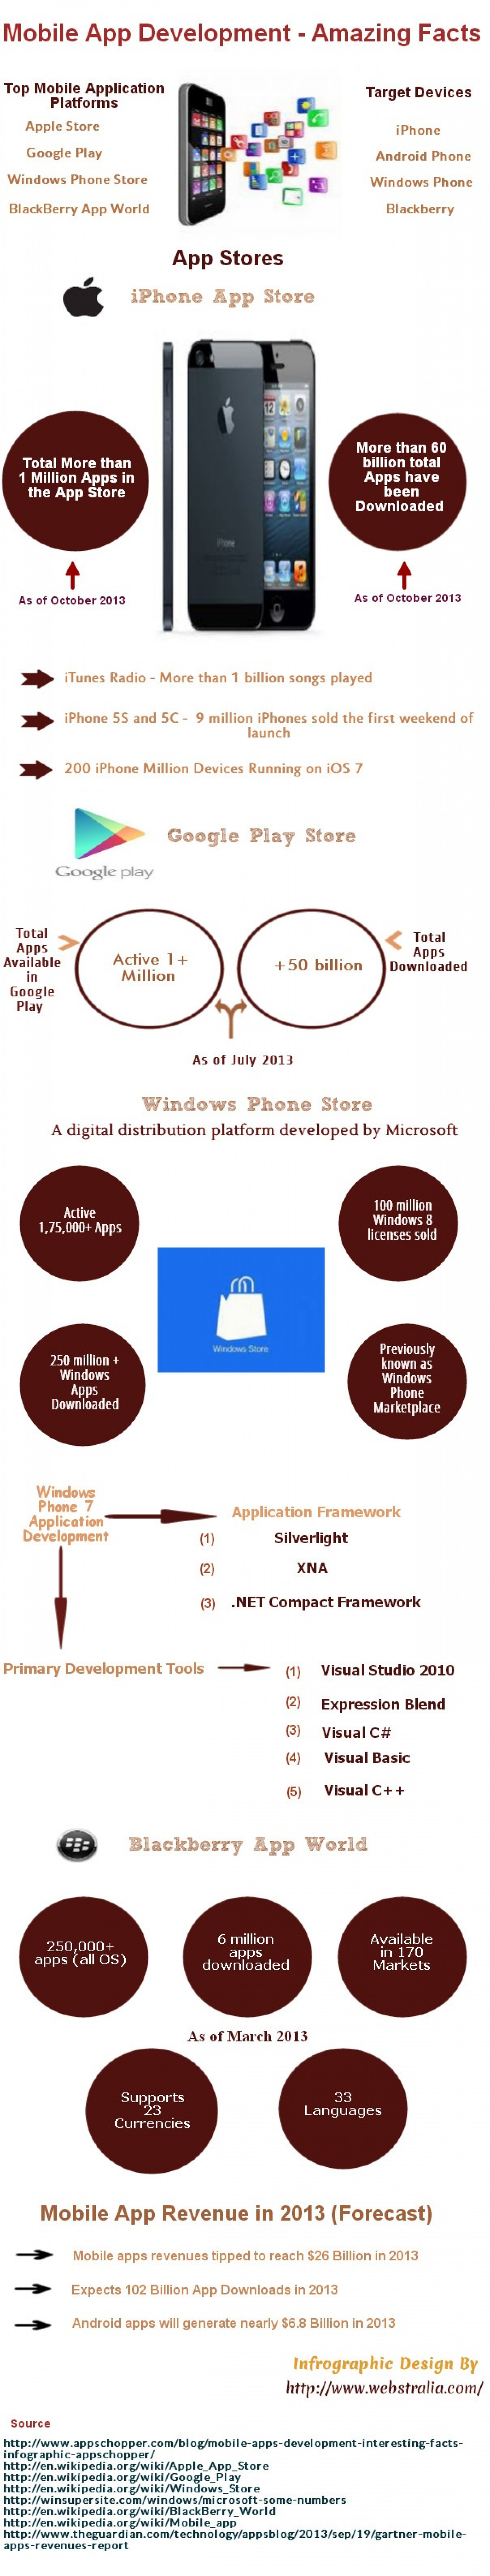 Mobile Application Development - Amazing Facts Infographic